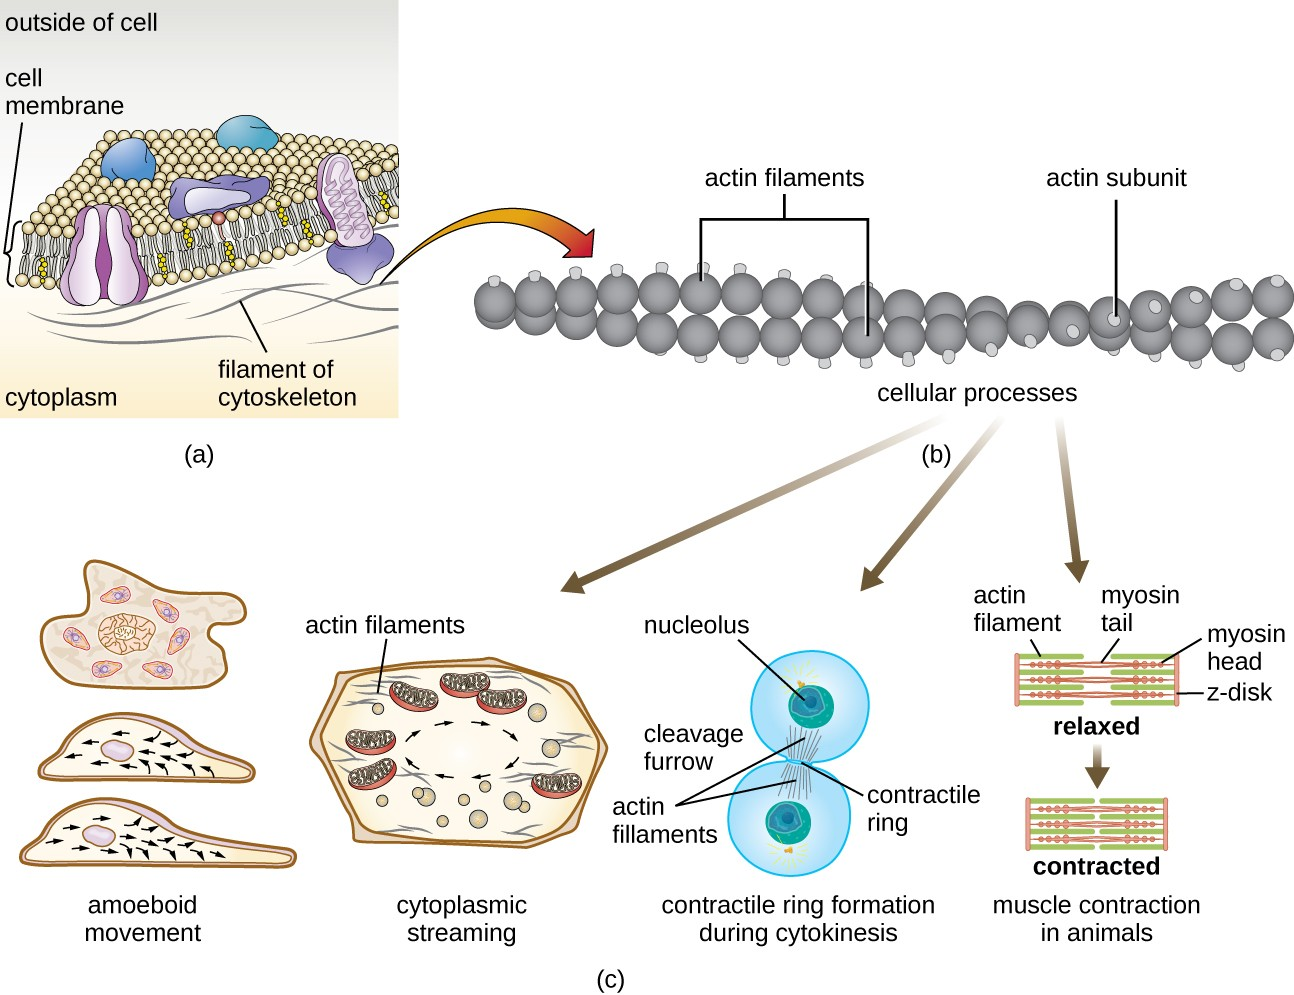 Unique Characteristics Of Eukaryotic Cells Microbiology Functional Anatomy Prokaryotic And A Diagram The Plasma Membrane Shows Filaments Cytoskeleton As Thin